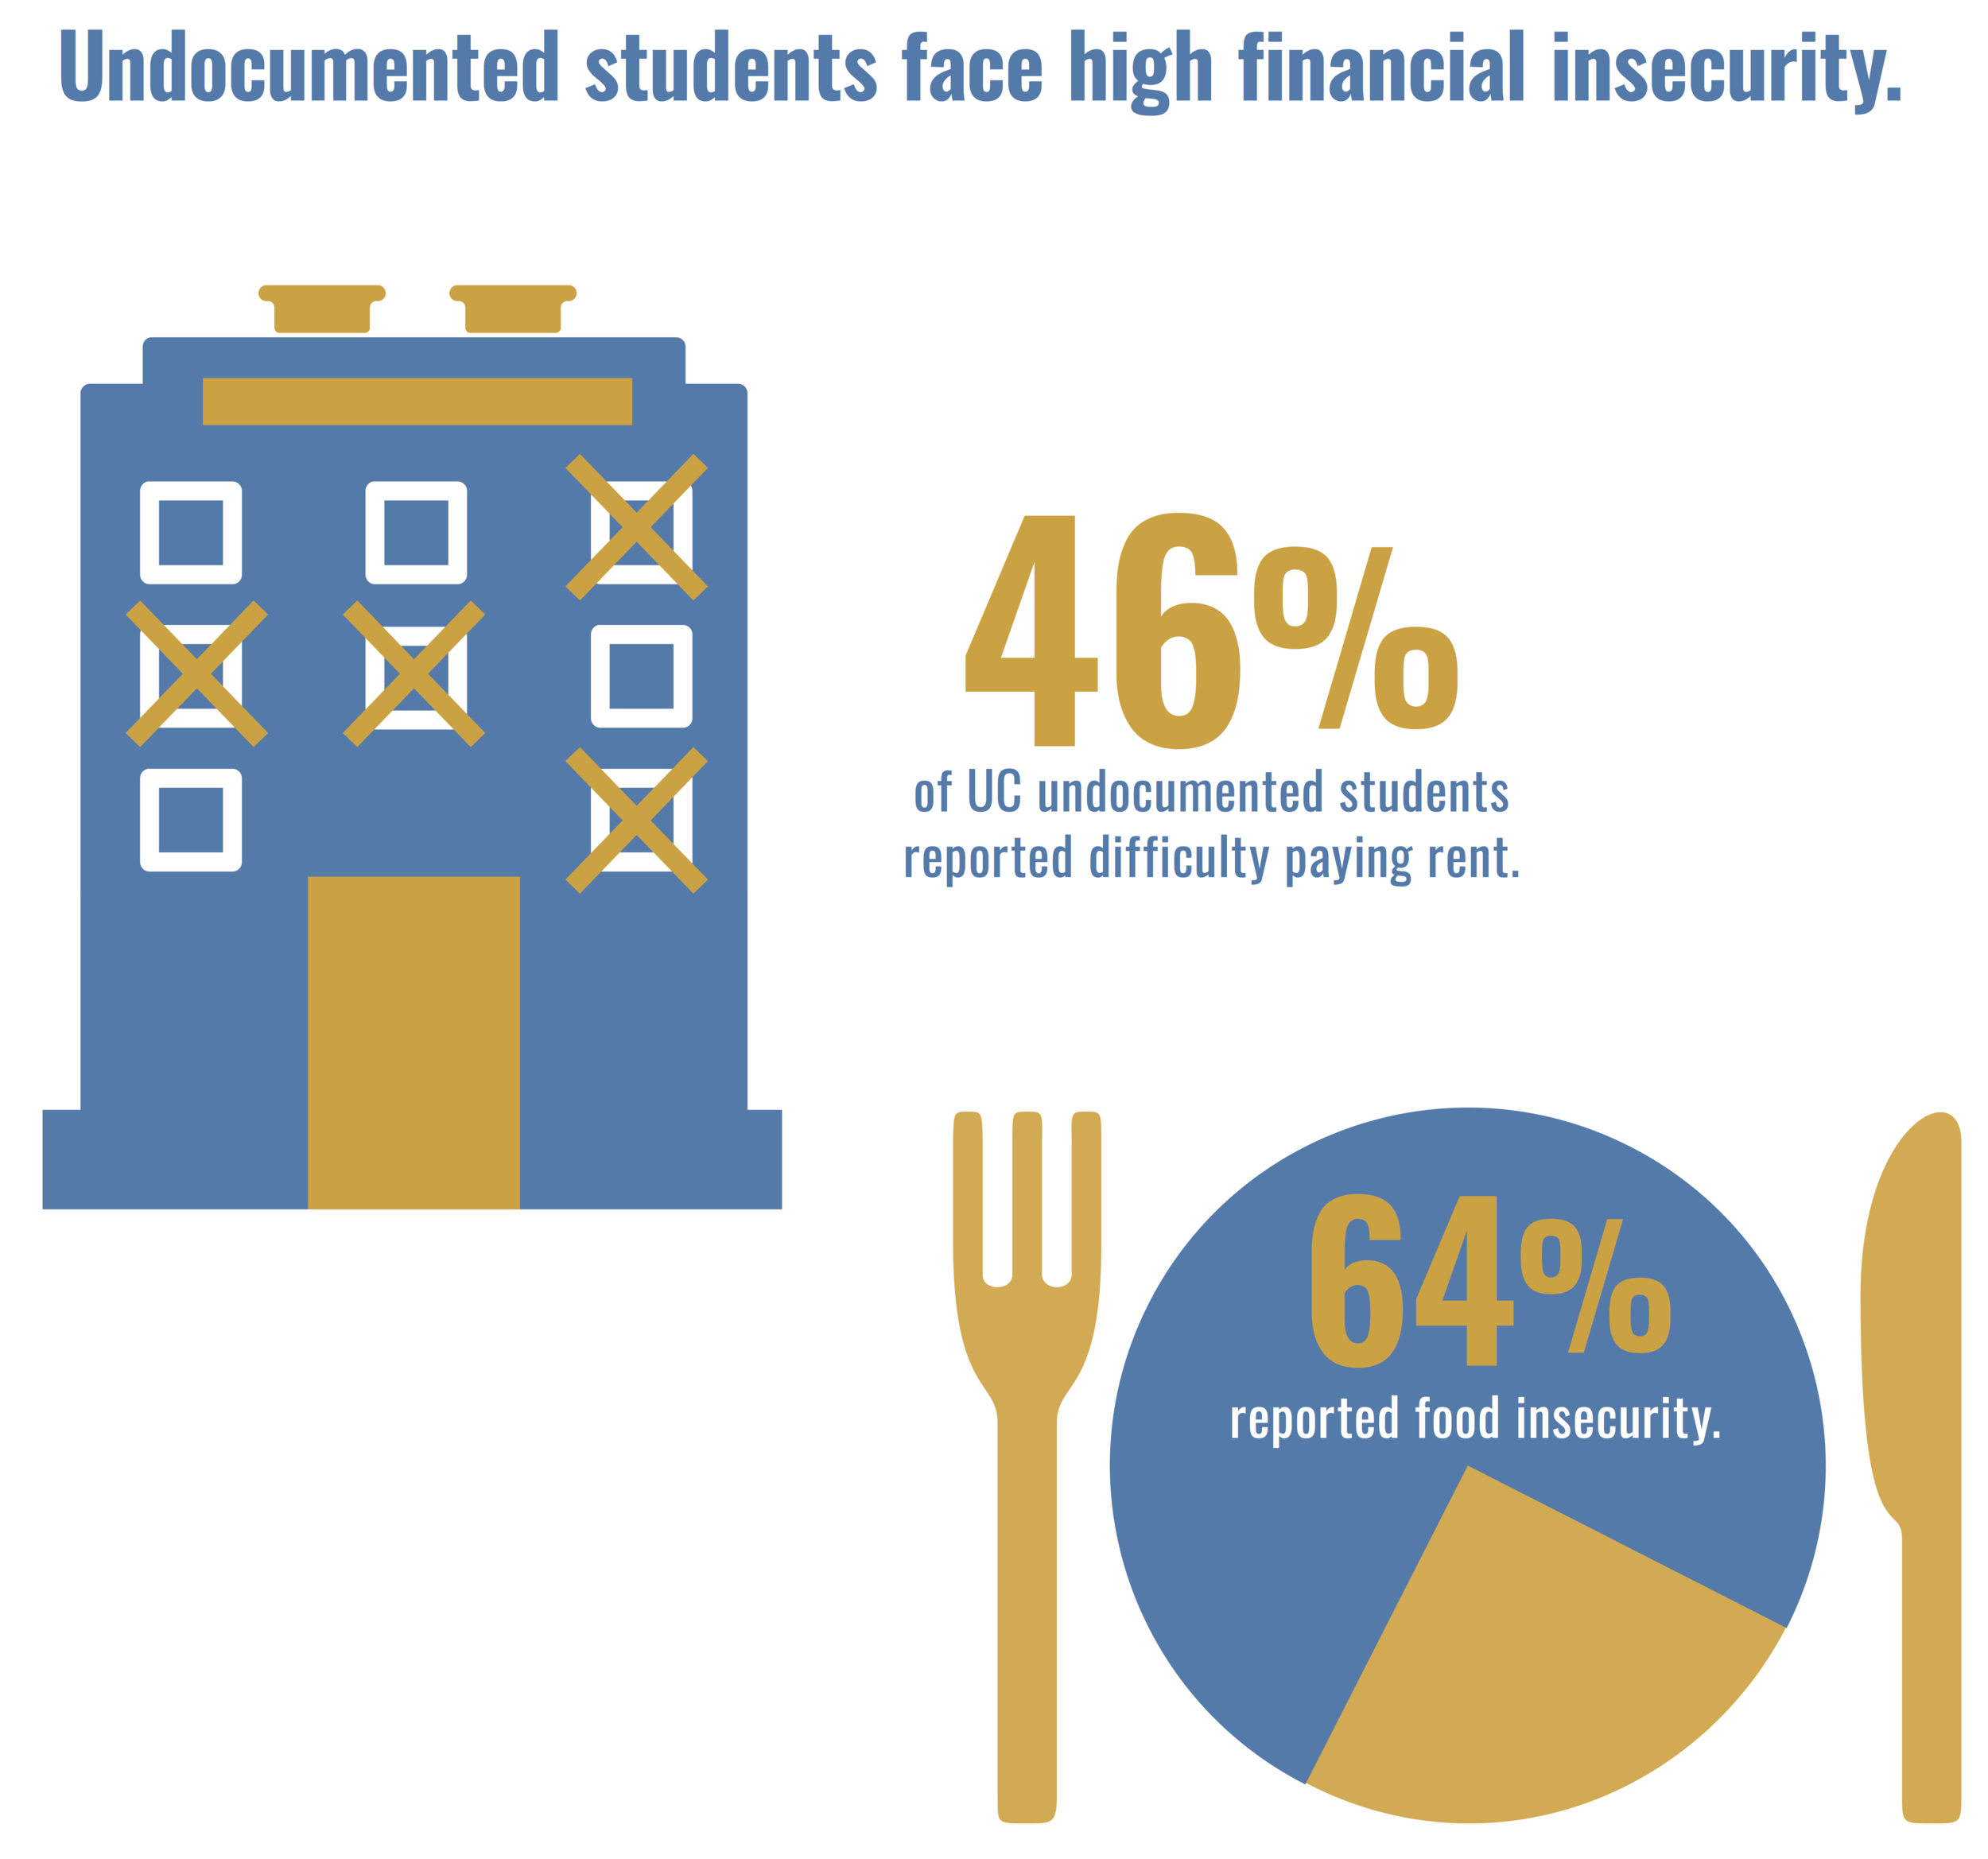 Struggling: Undocumented Students' Financial Need - UC undocumented students receive need-based financial aid if they qualify for in-state tuition, narrowing the gap between undocumented and citizen students from low-income backgrounds. Despite this, UC undocumented students have persisting financial need. This 2-page brief reviews their access to financial aid, explores persisting financial concerns, and offers policy recommendations.